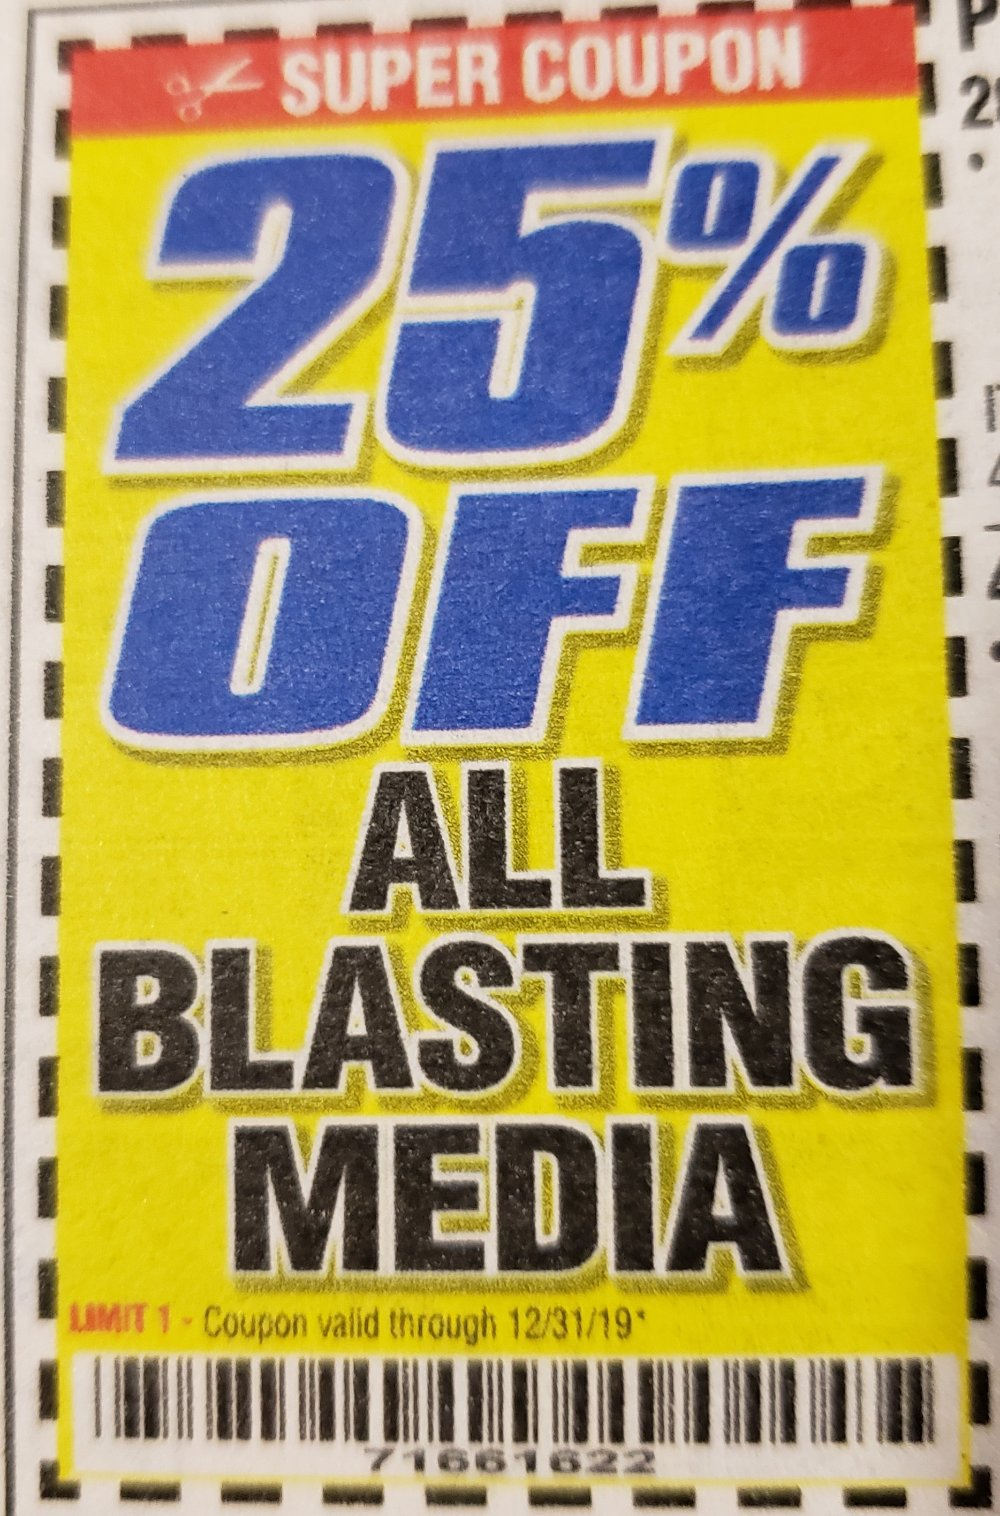 Harbor Freight Coupon, HF Coupons - 25% off all blasting media